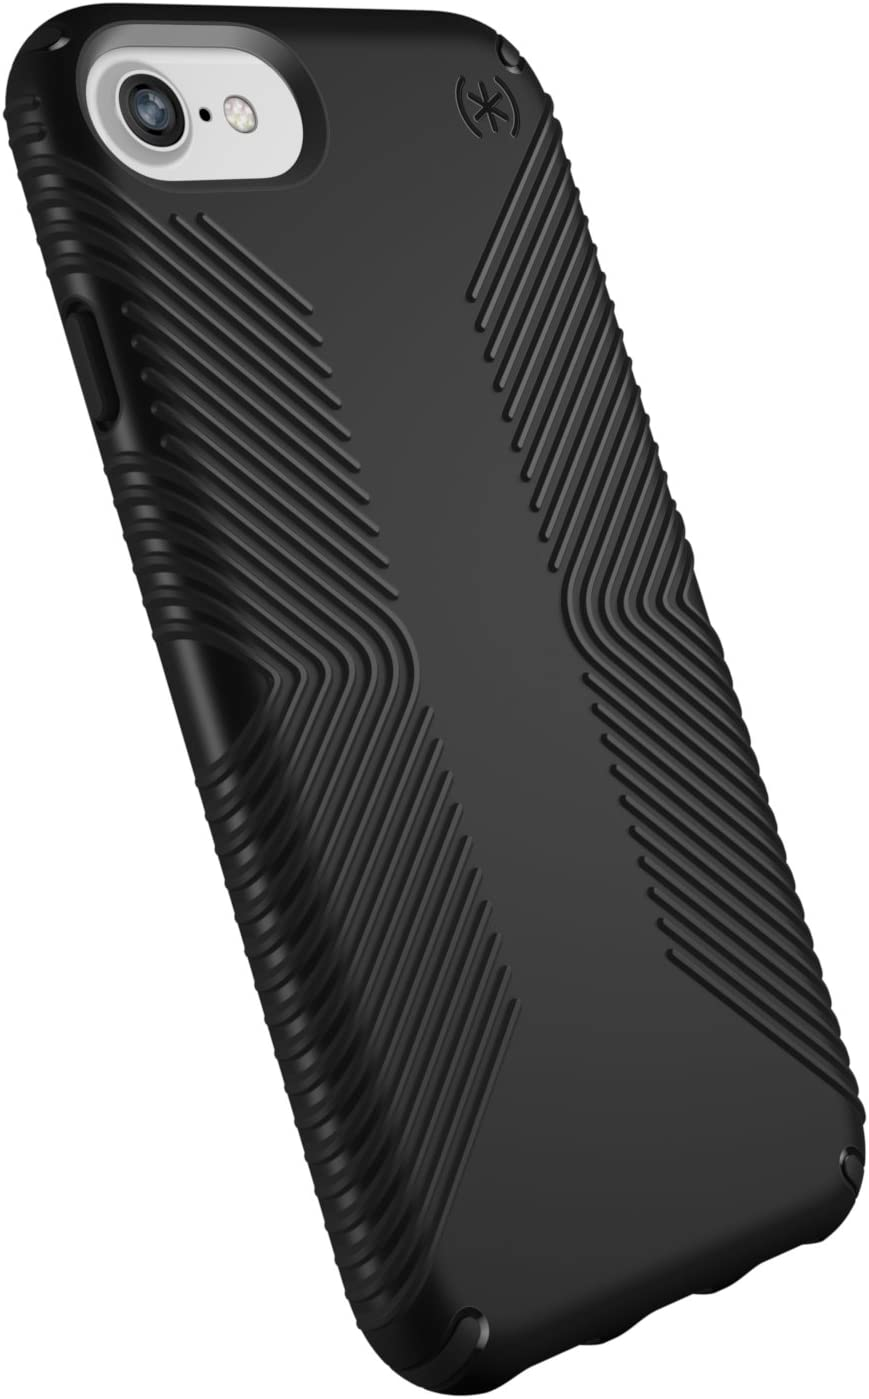 Speck Products Presidio Grip iPhone SE 2020 Case/iPhone 8, iPhone 7, iPhone 6S, iPhone 6 - Black/Black, 25-Pack Business Packaging